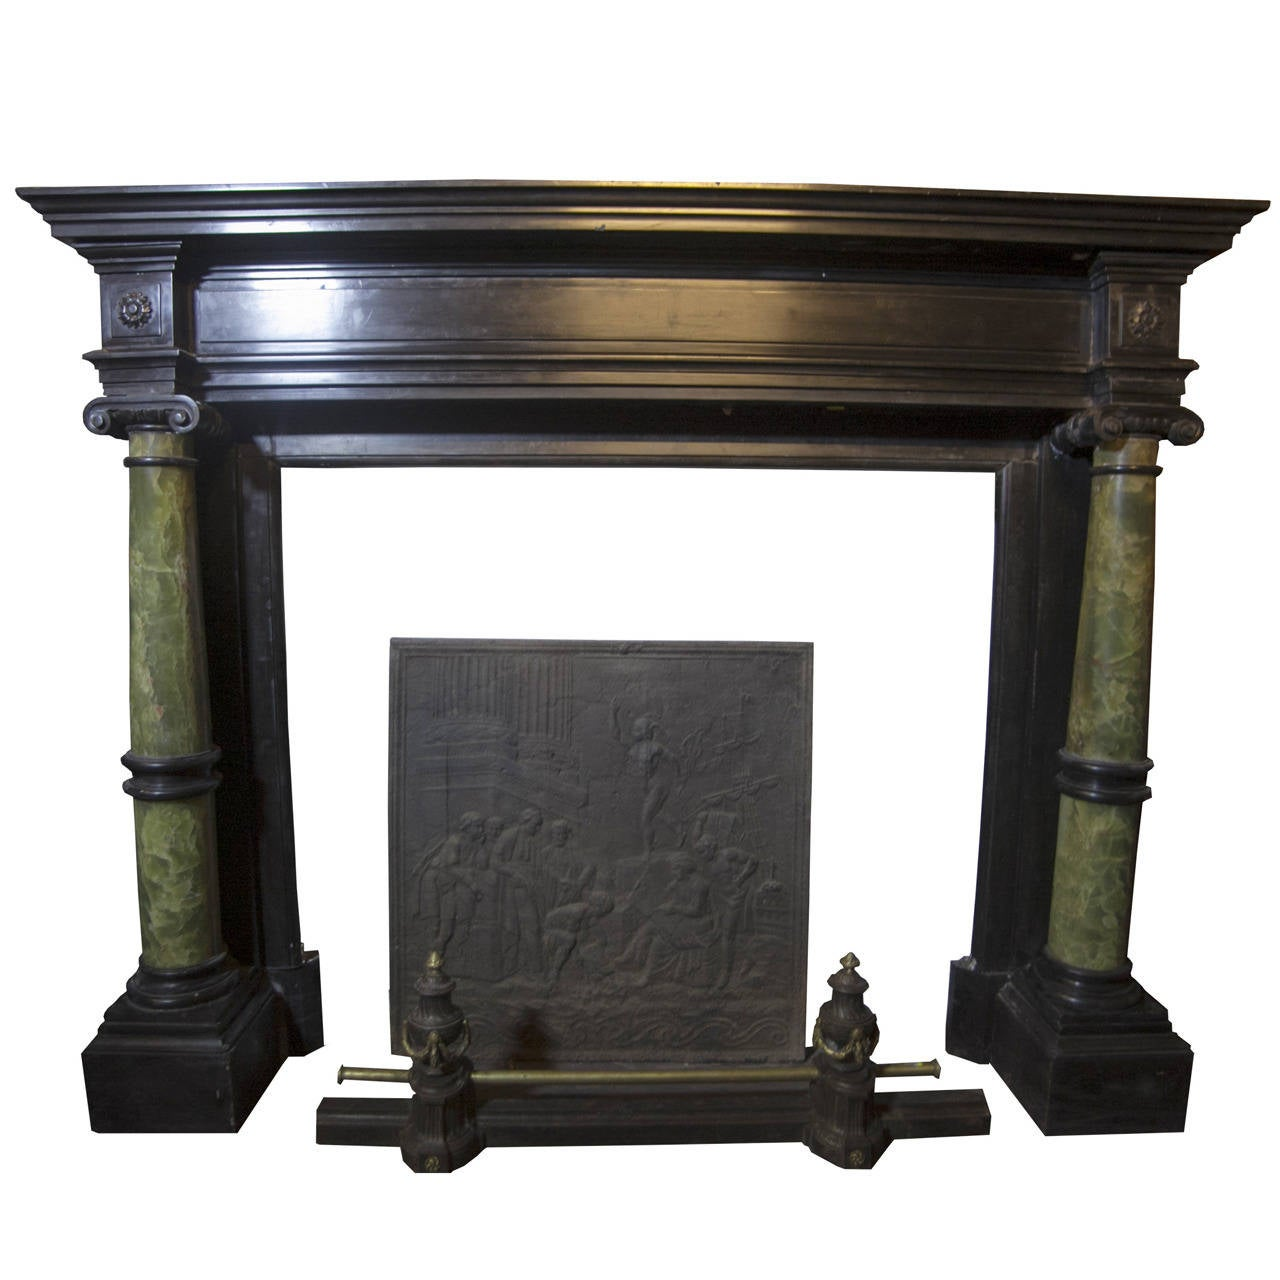 Antique Fireplace Black Belgian Marble And Green Onyx For Sale At 1stdibs